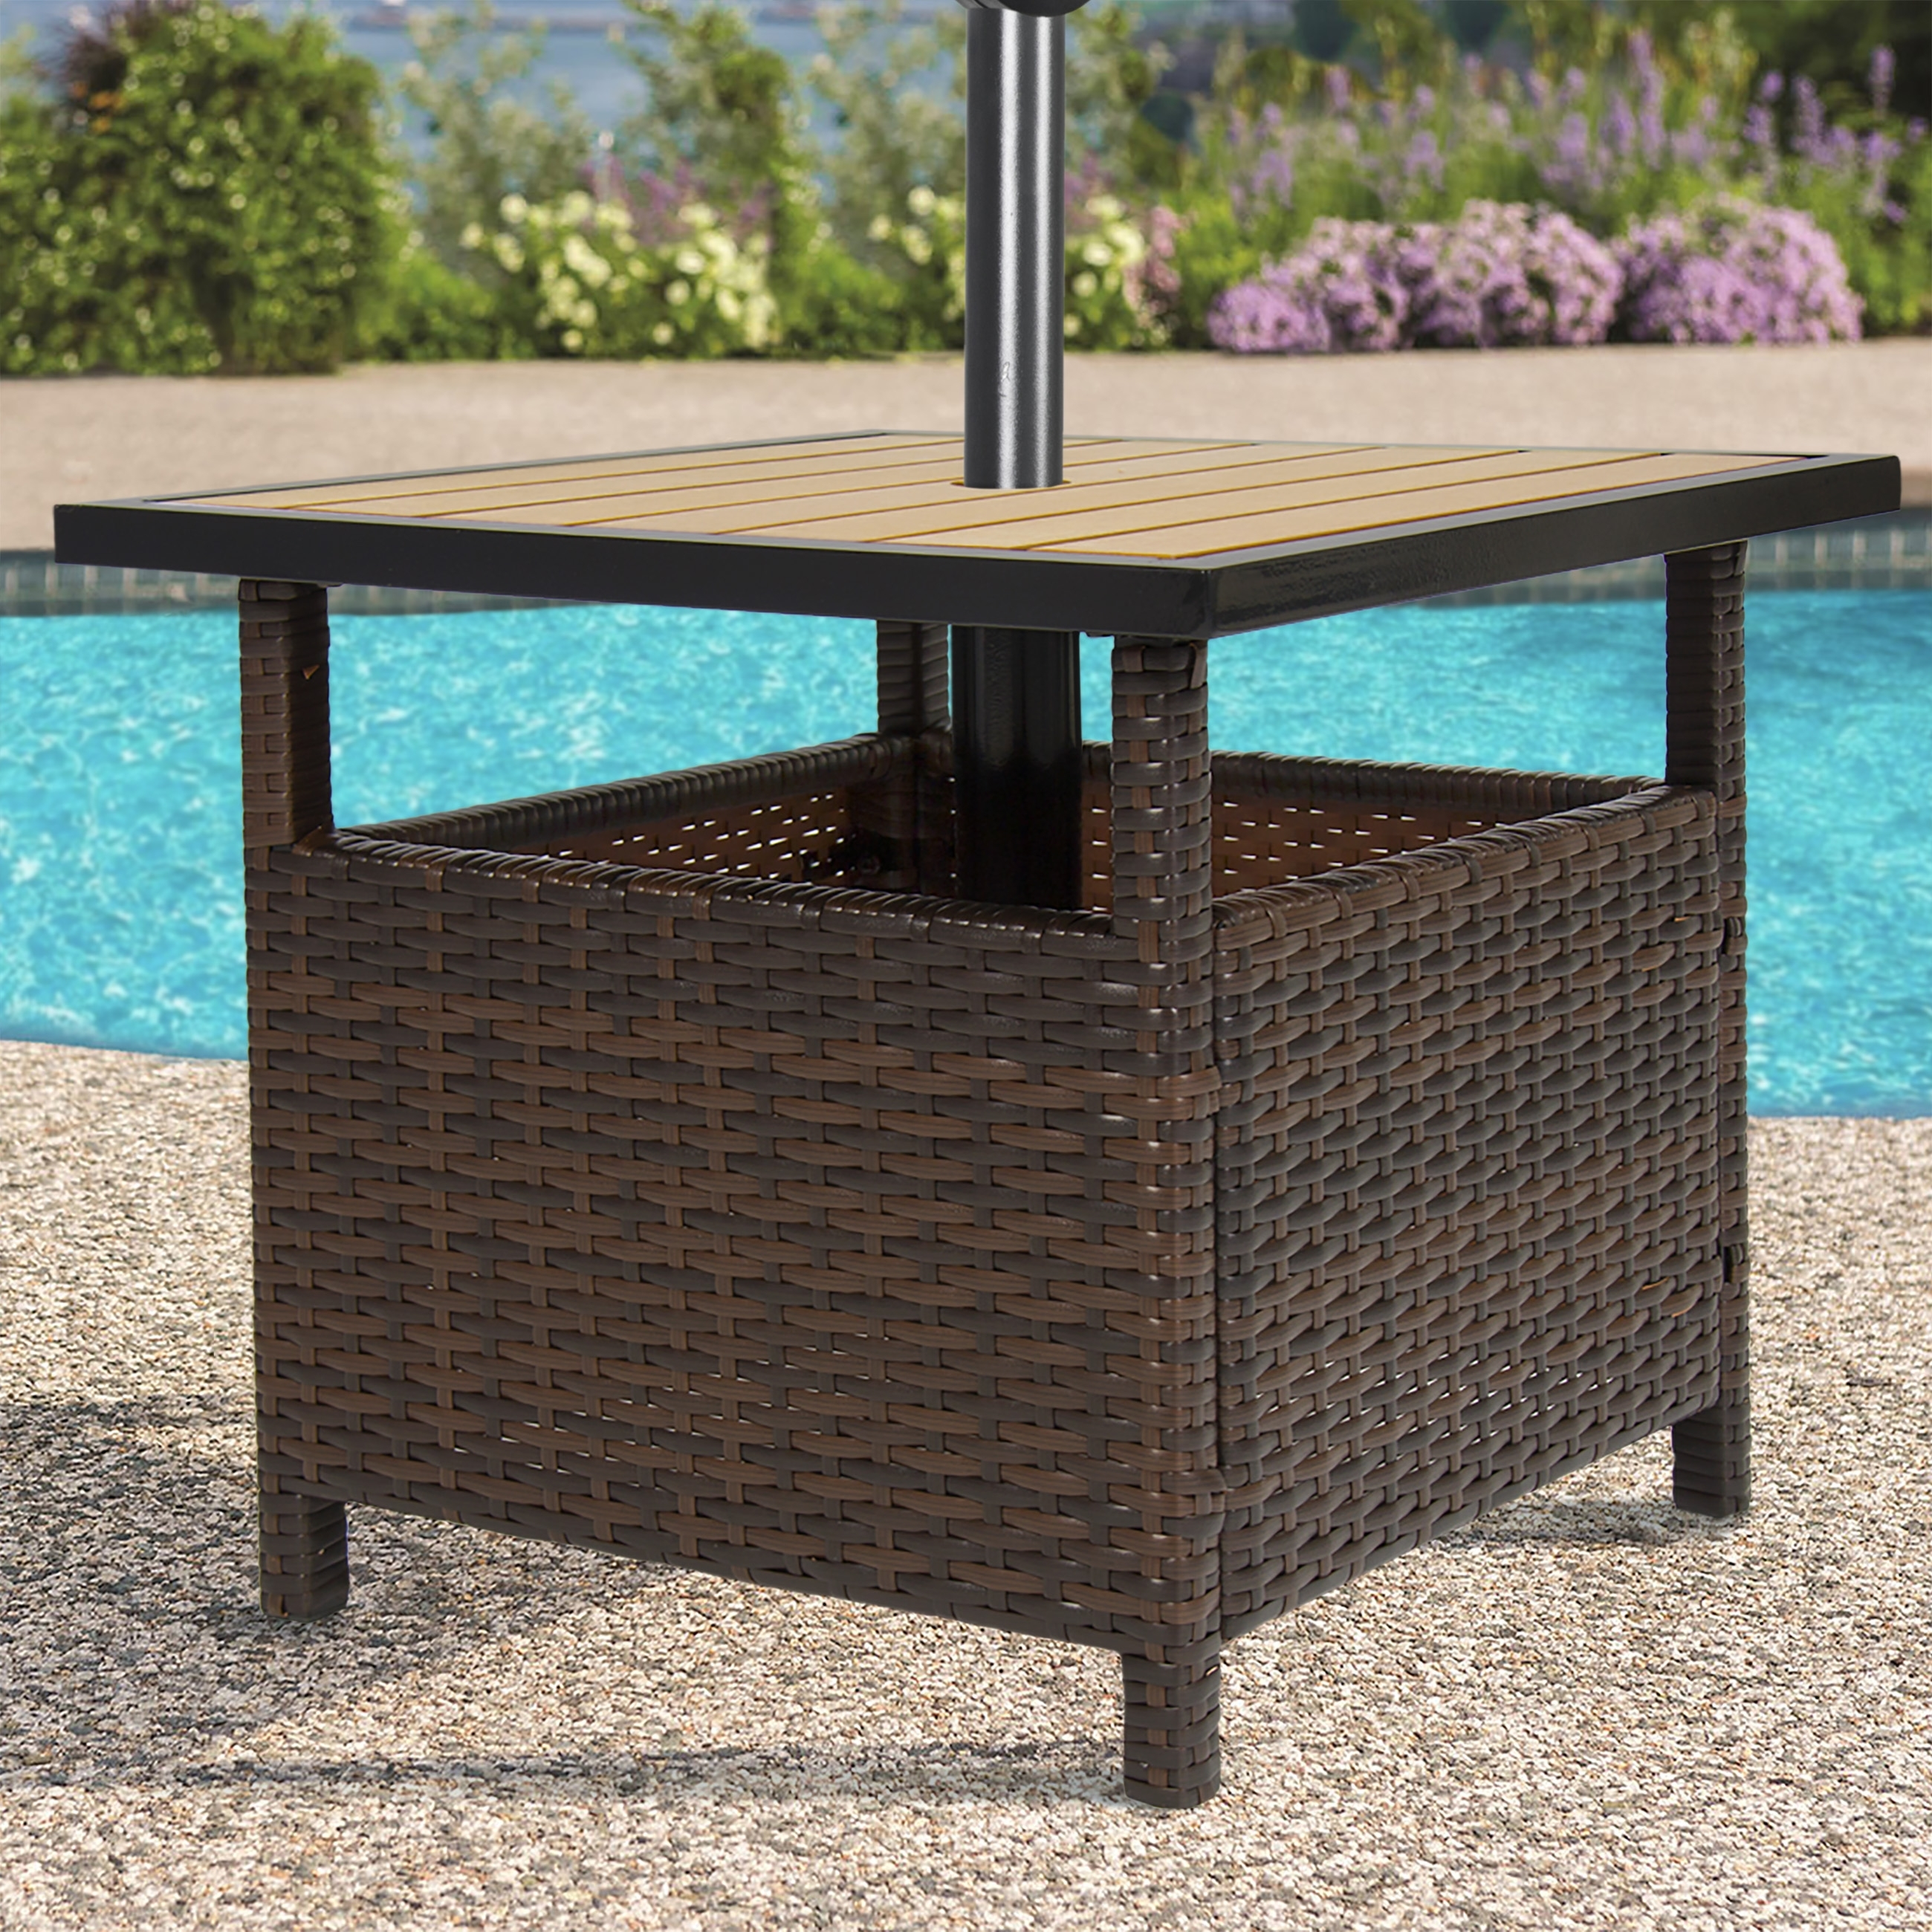 Widely Used Best Choice Products Outdoor Furniture Wicker Rattan Patio Umbrella With Patio Umbrella Stand Side Tables (View 20 of 20)